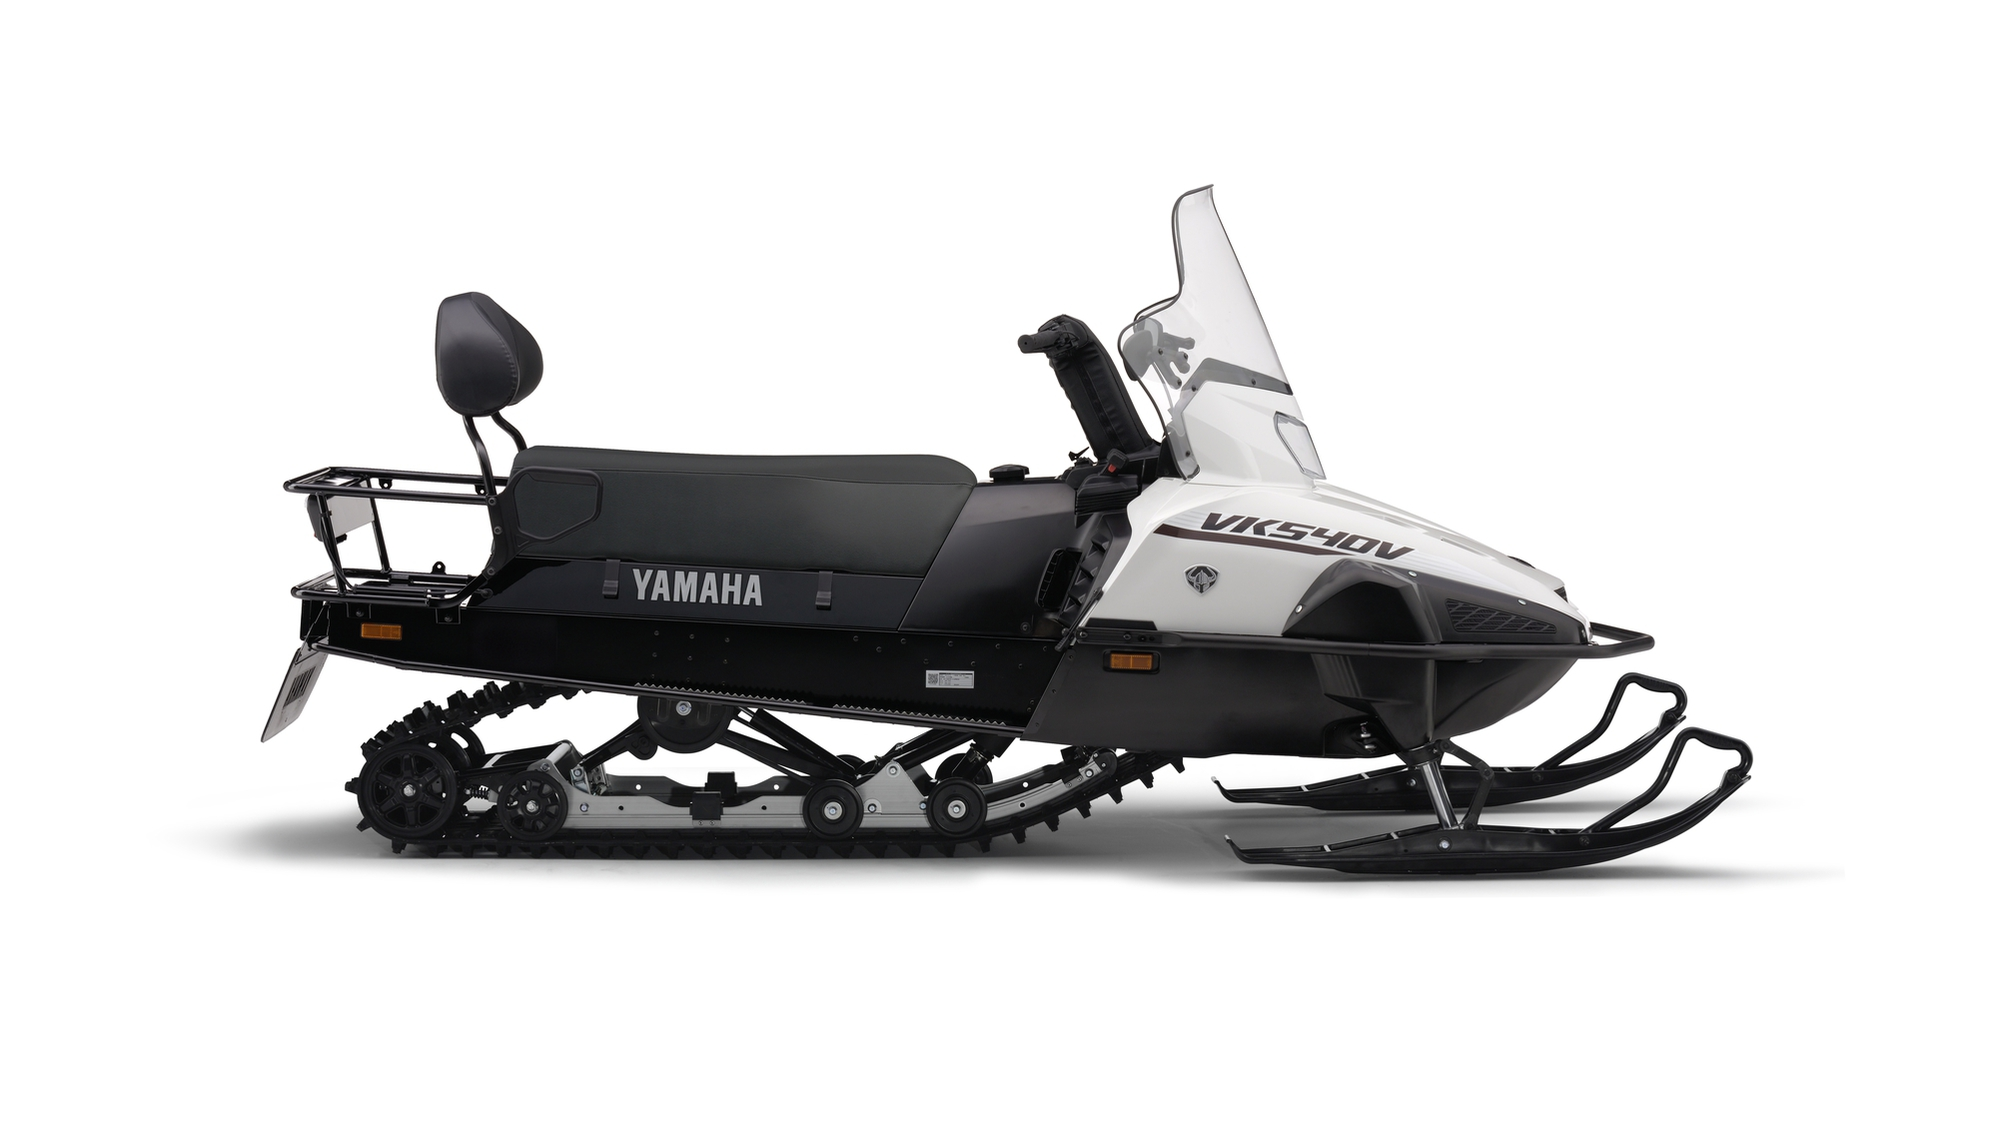 2018-Yamaha-VK540-V-EU-Powder-White-Studio-002.jpg